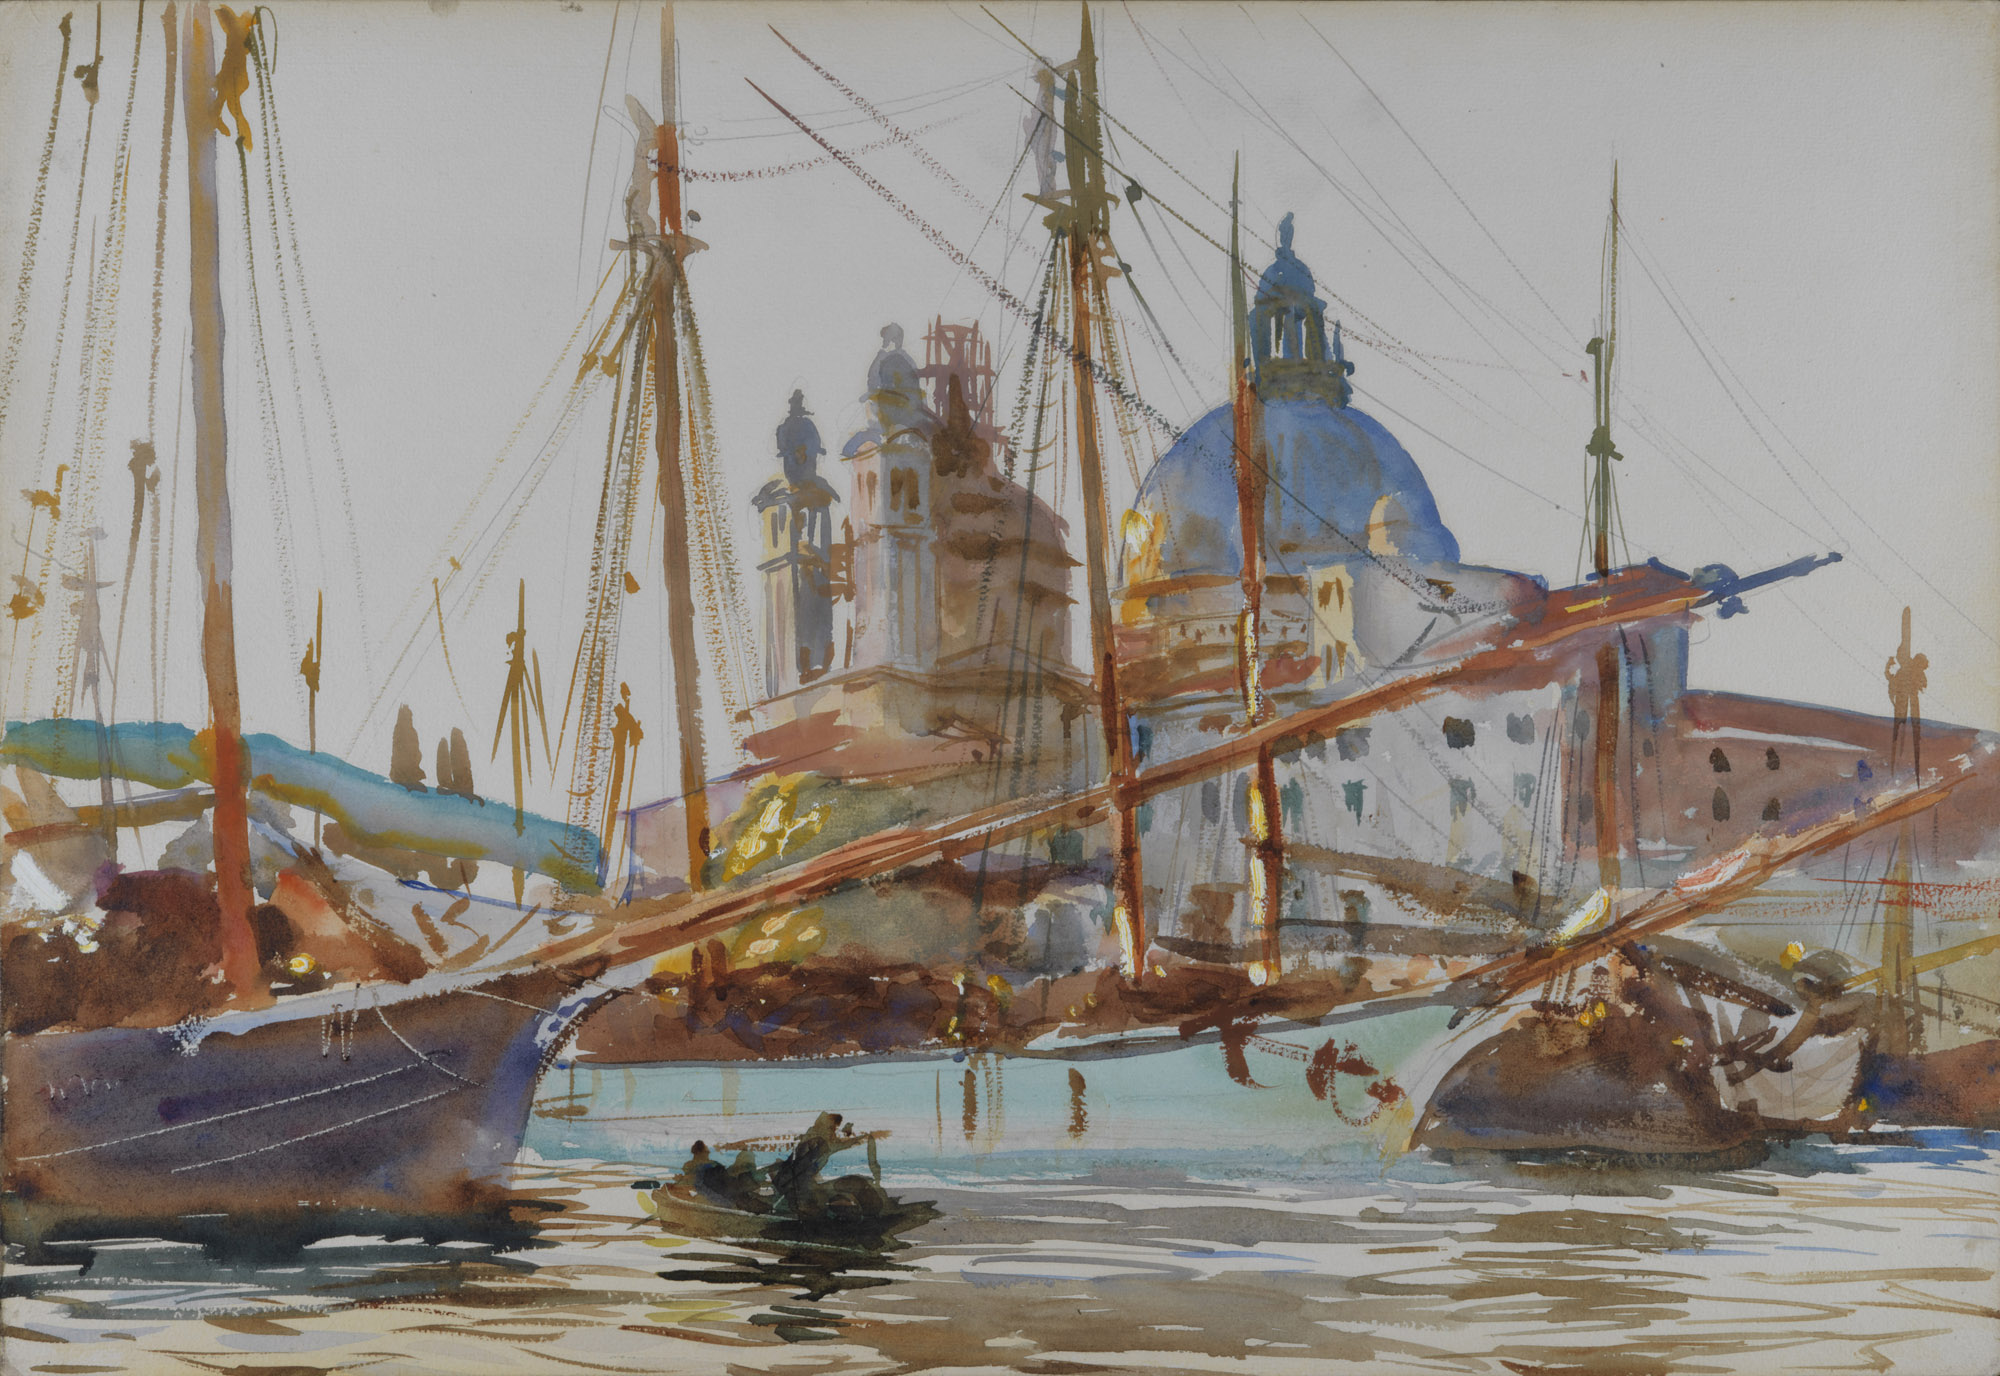 a watercolour sketch of domed buildings seen through the rigging of boats on the water